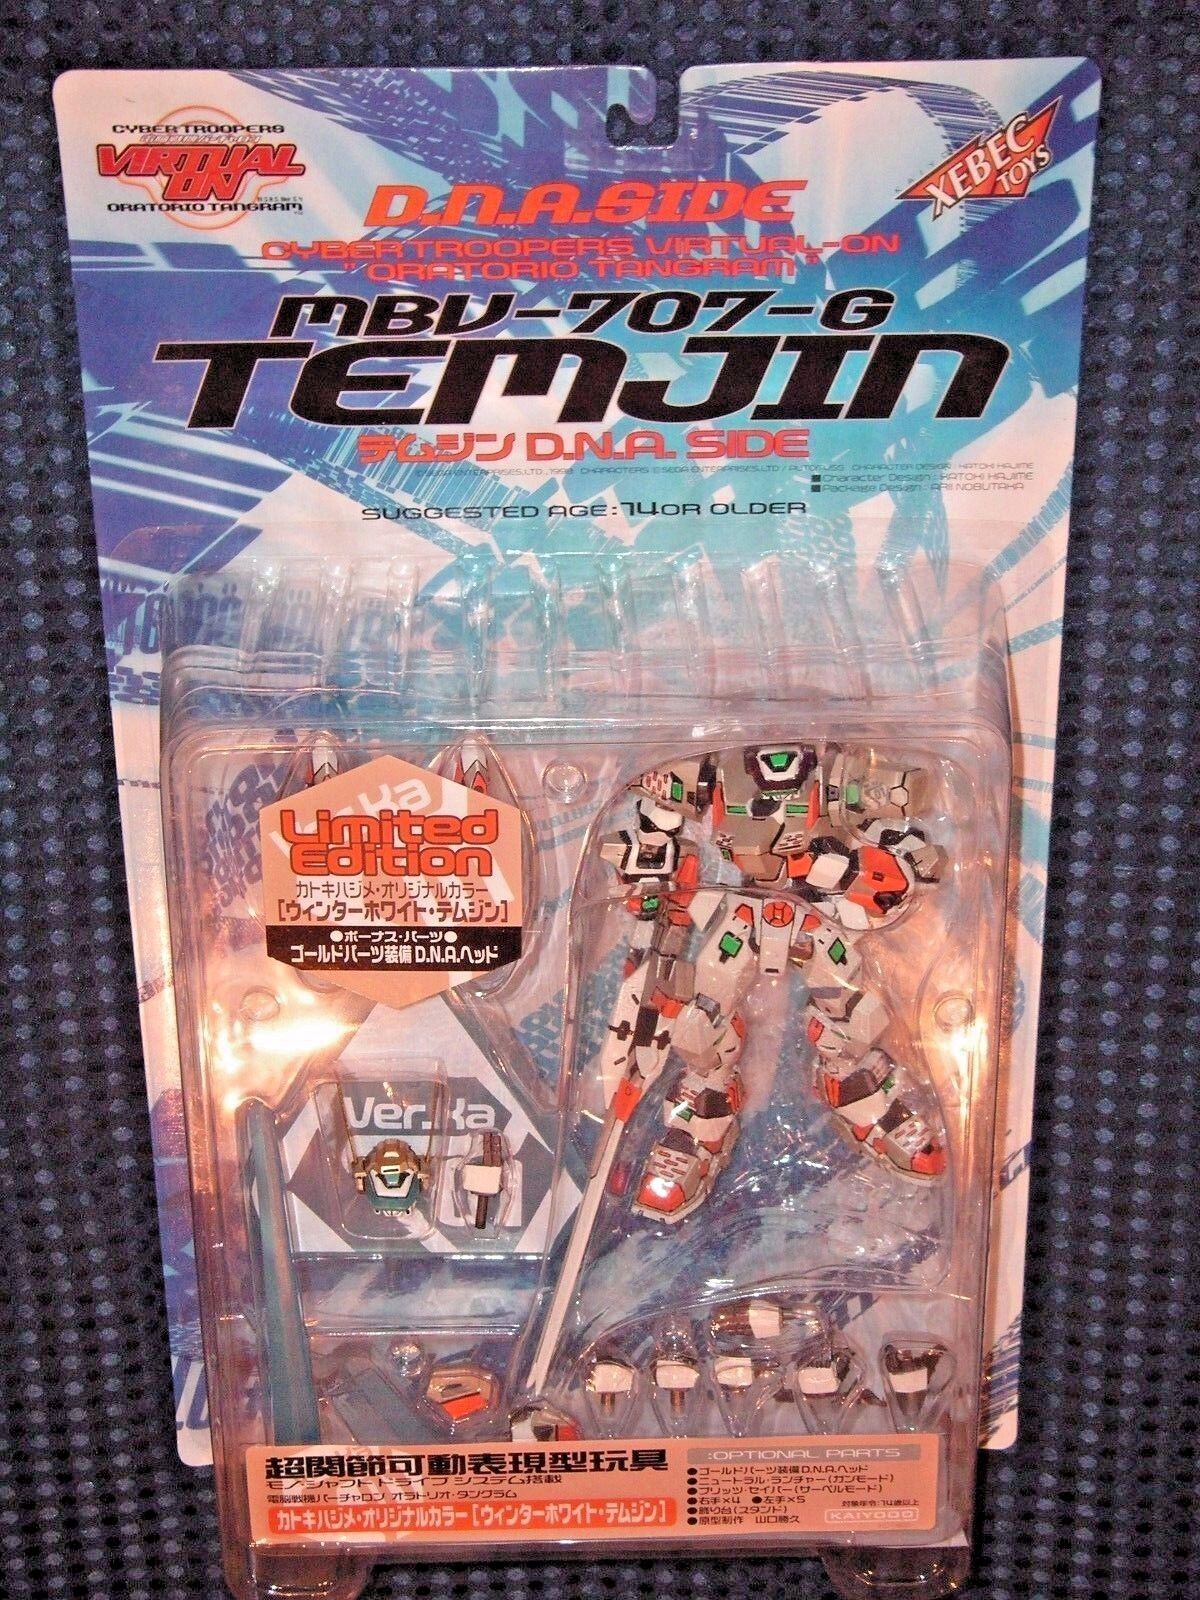 RARE Cyber Trooper VIRTUAL-ON TEMJIN DNA Side Limited Winter bianca Action Figure